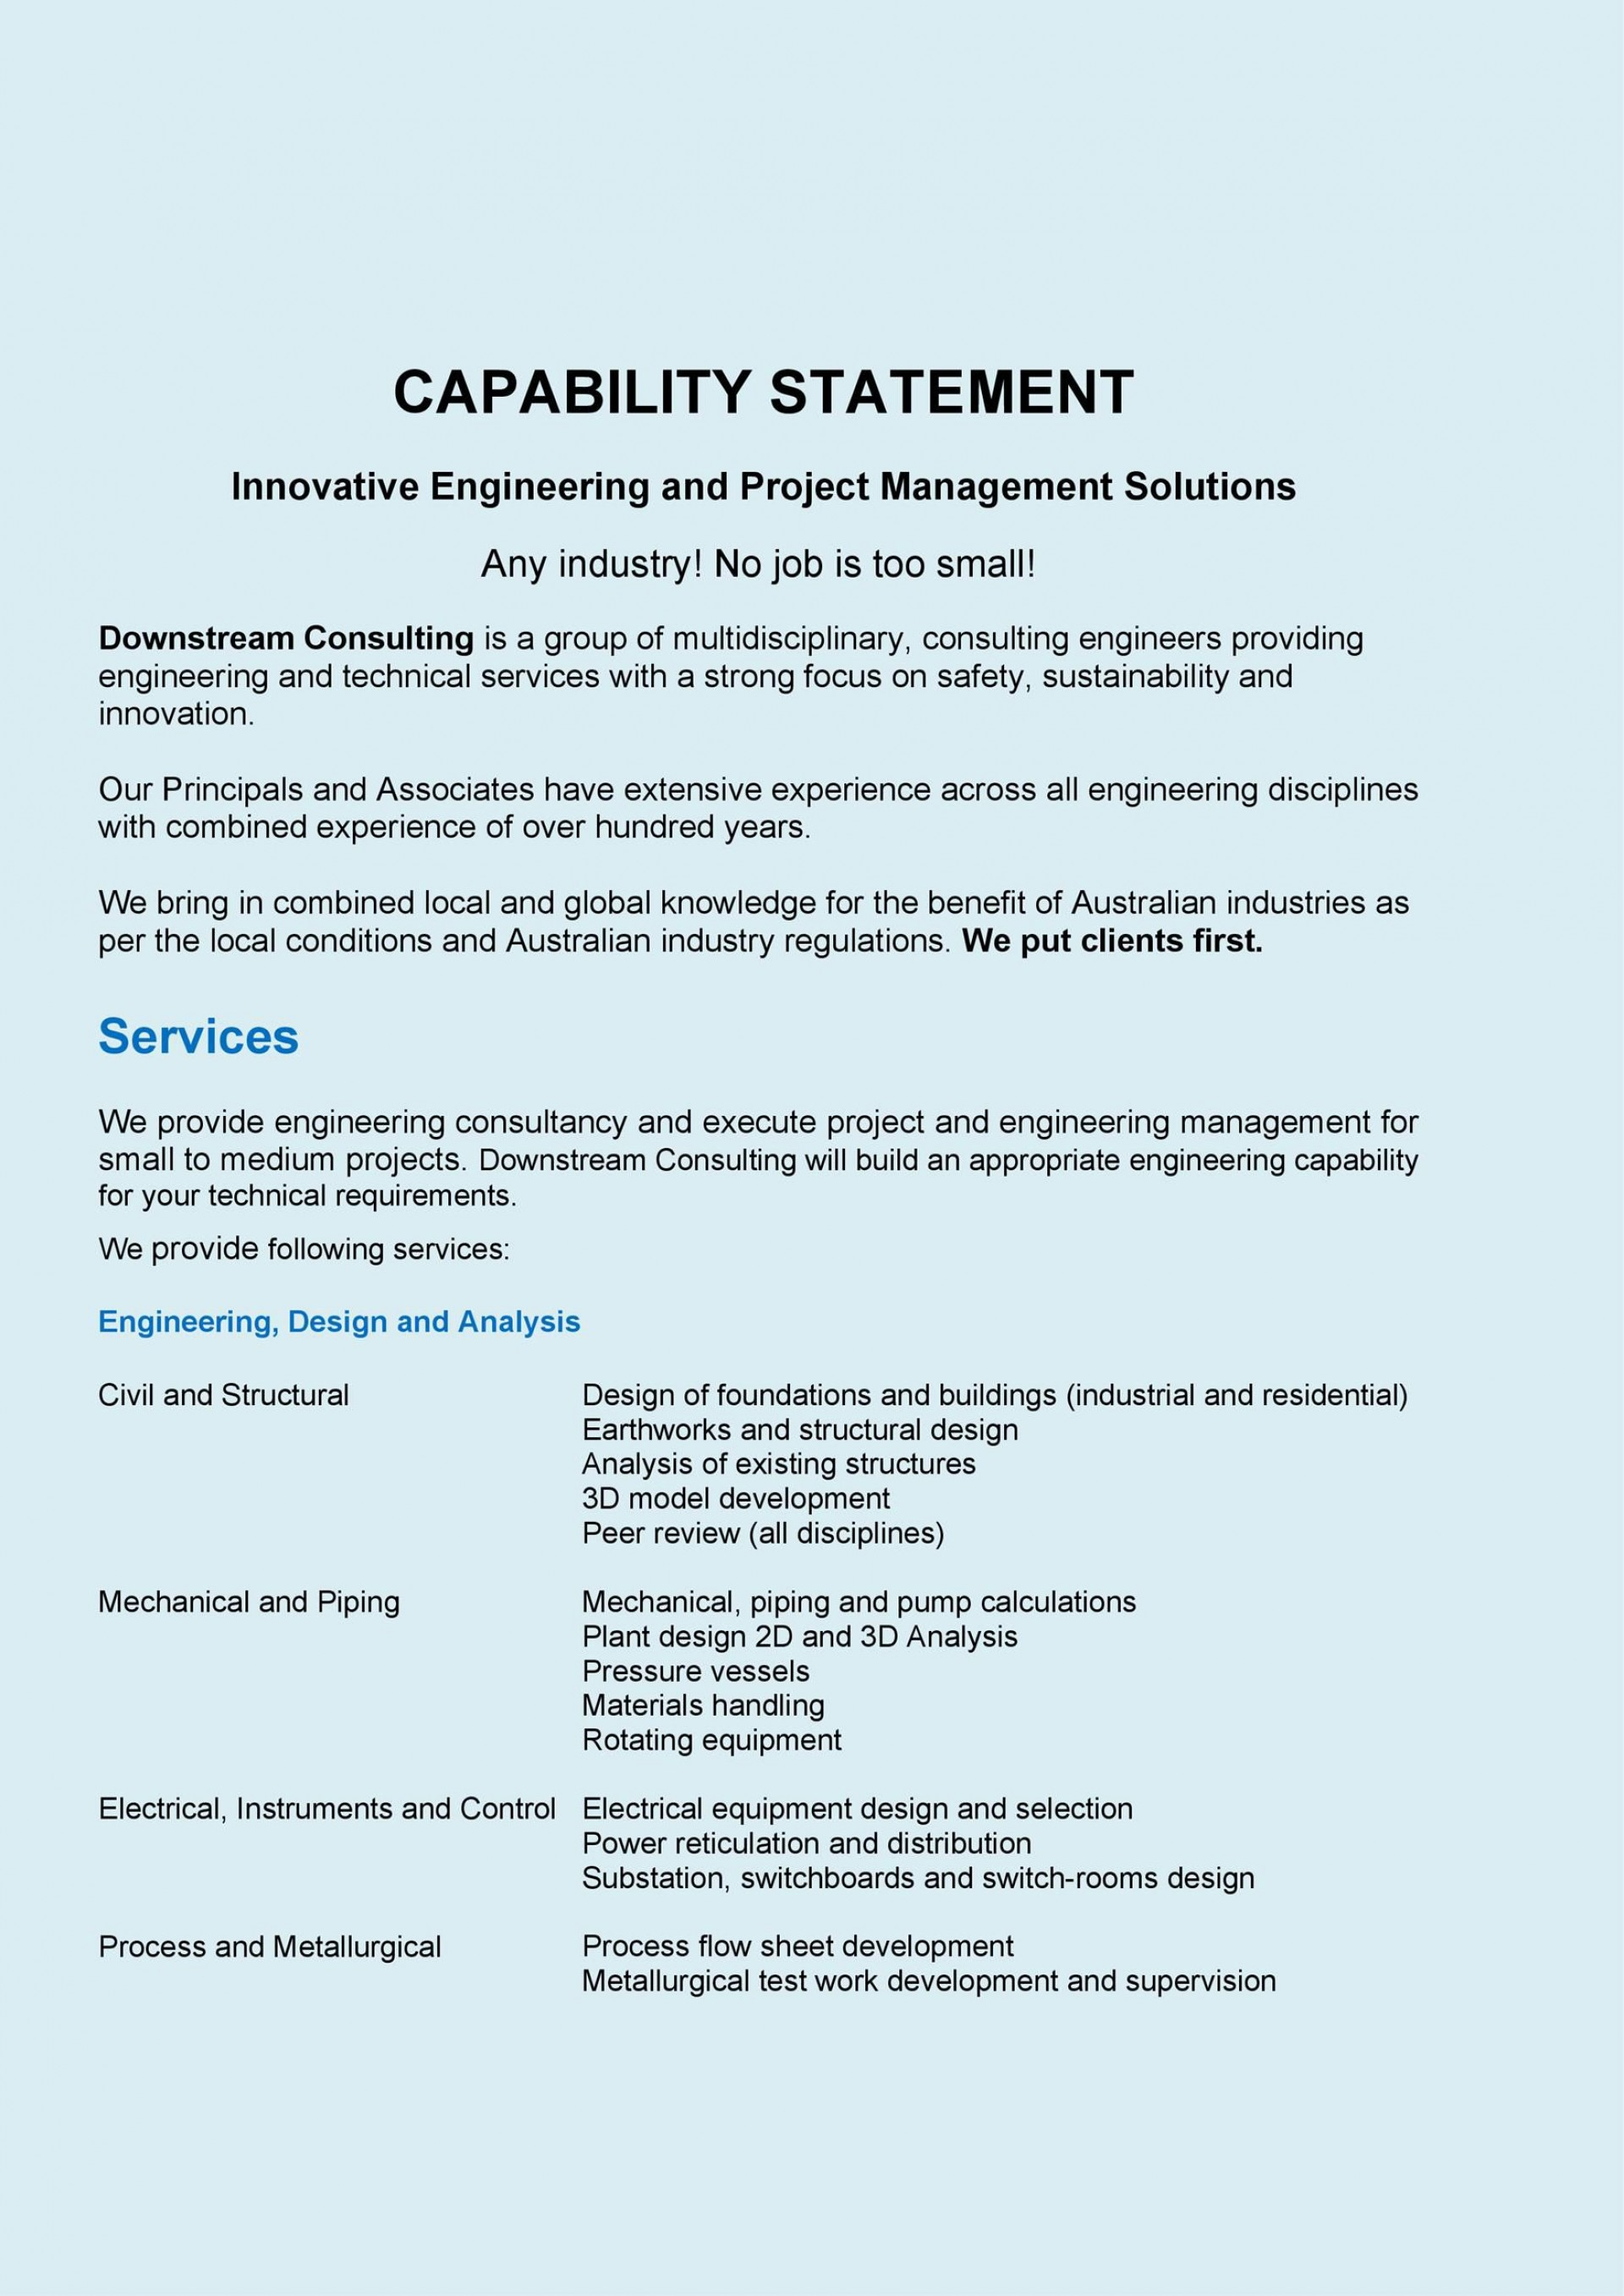 006 Fantastic Capability Statement Template Word Doc Highest Clarity  Document Free1920